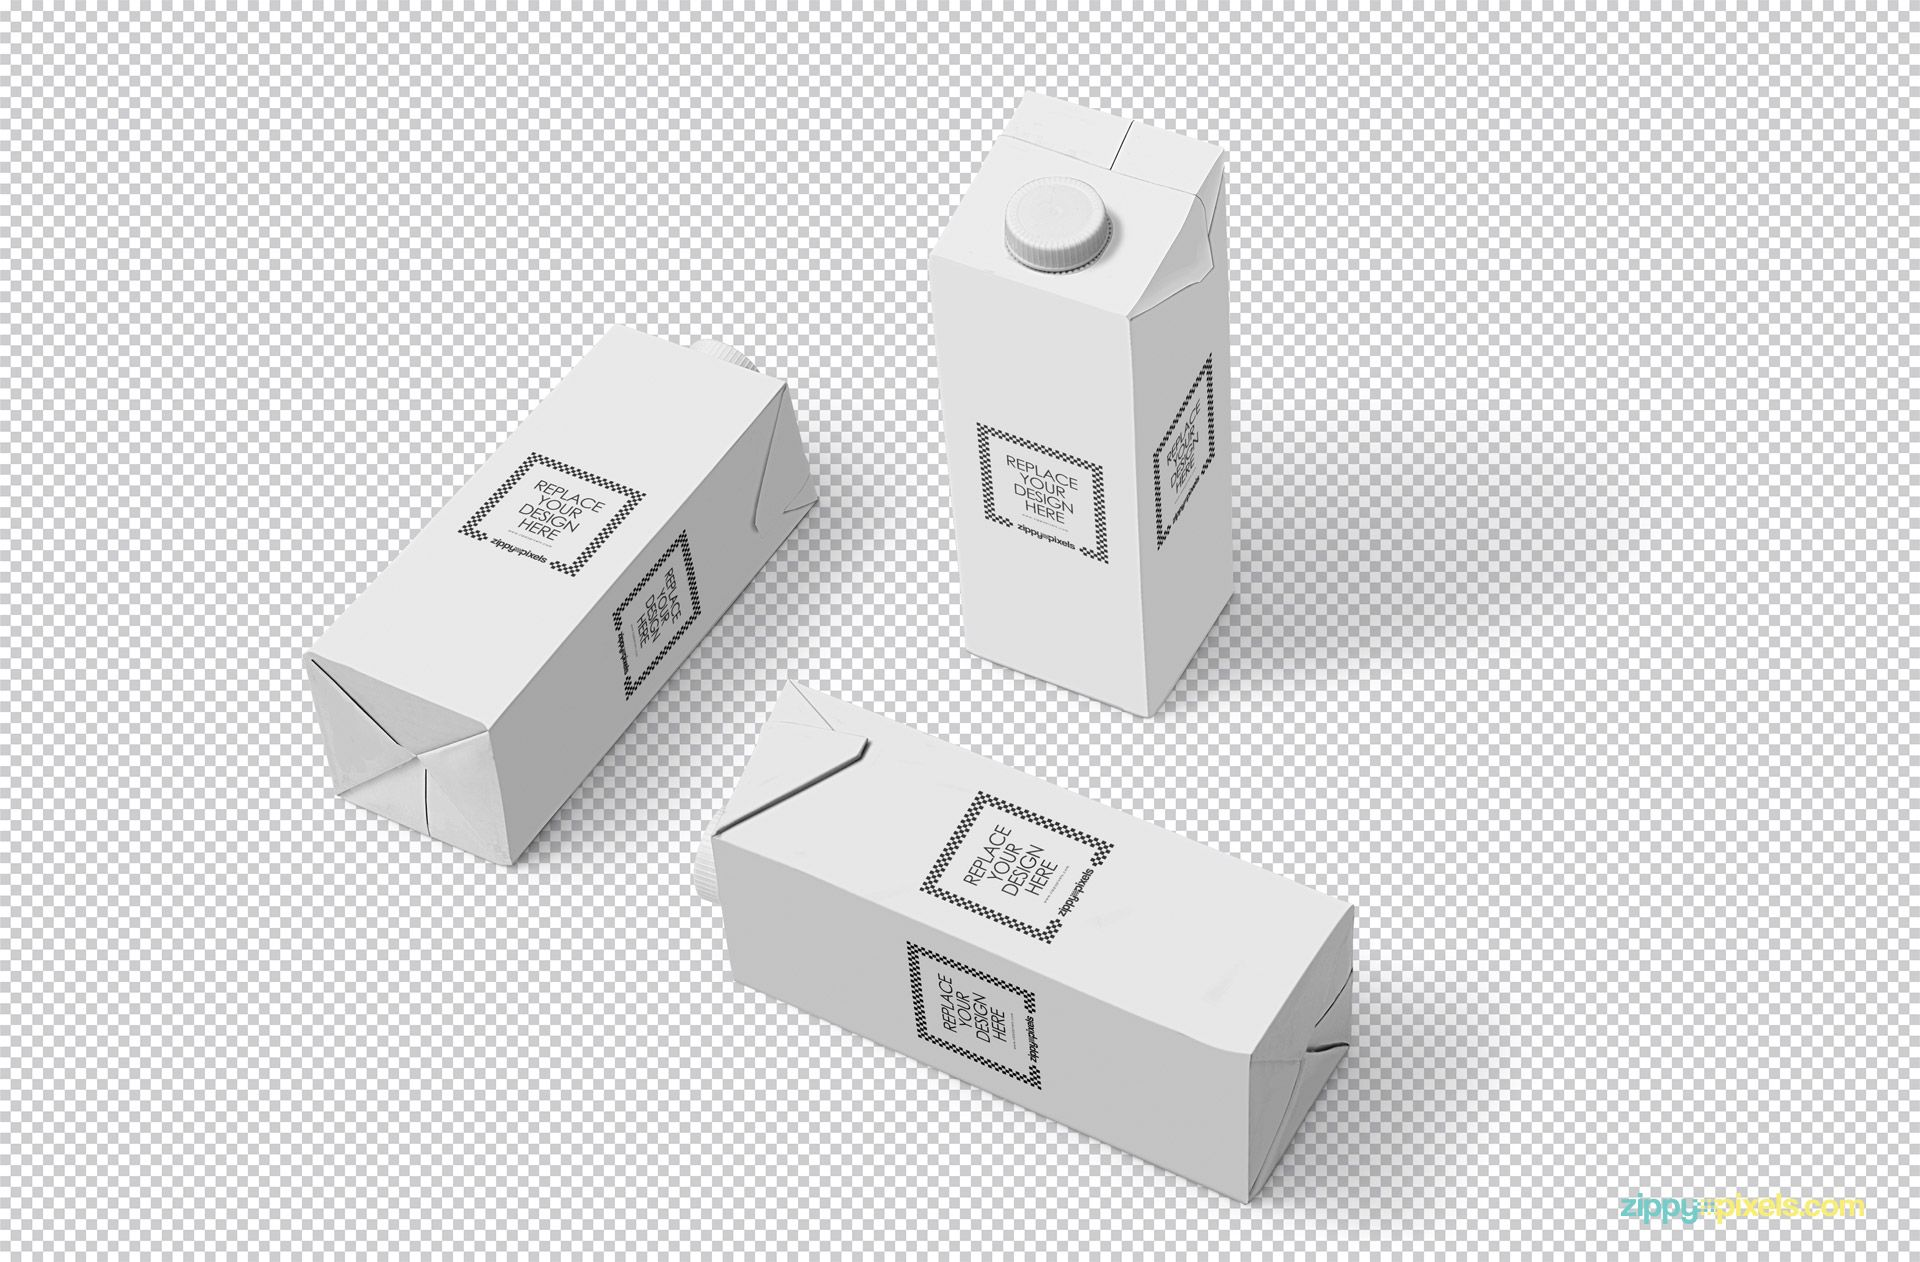 Download Free Milk Carton Mockup Zippypixels Box Mockup Free Packaging Mockup Carton Box